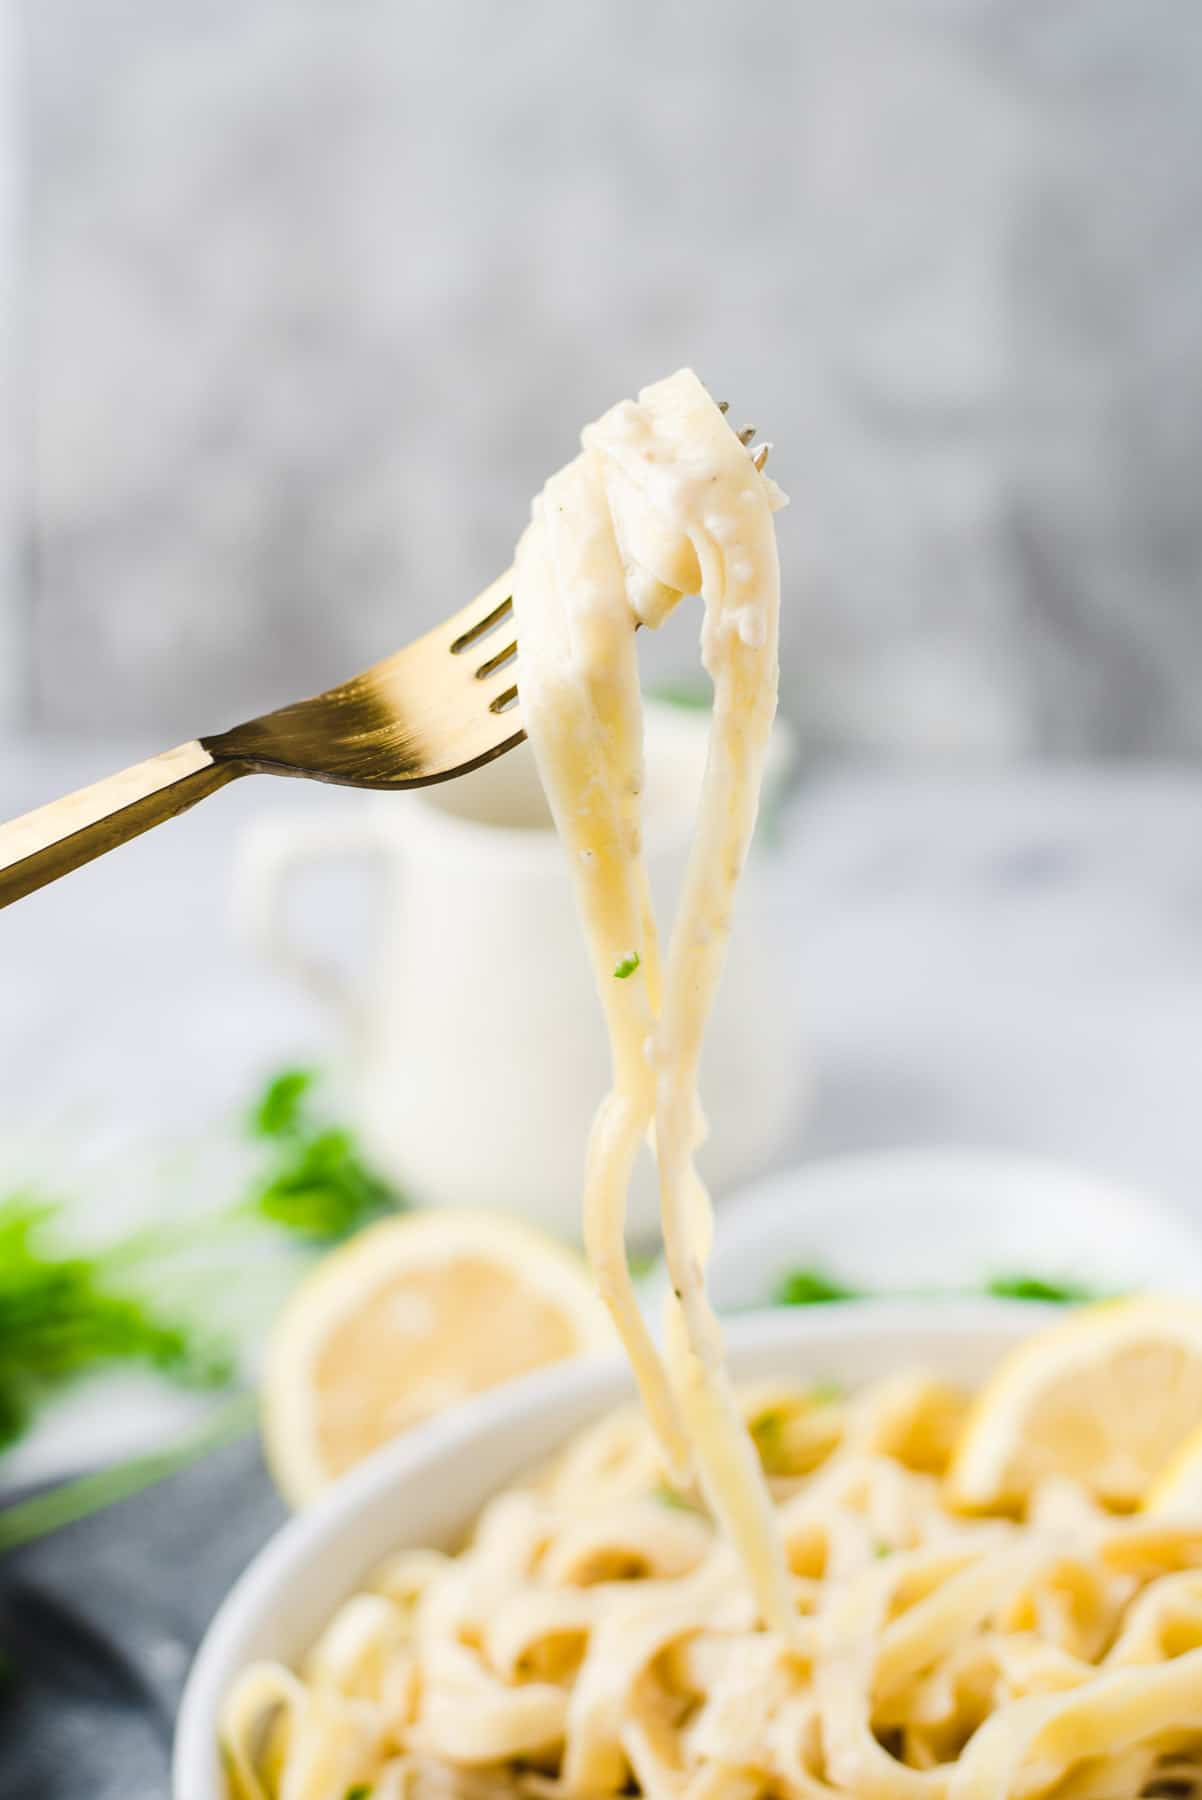 Forkful of fettucine being lifted out of a bowl filled with alfredo pasta